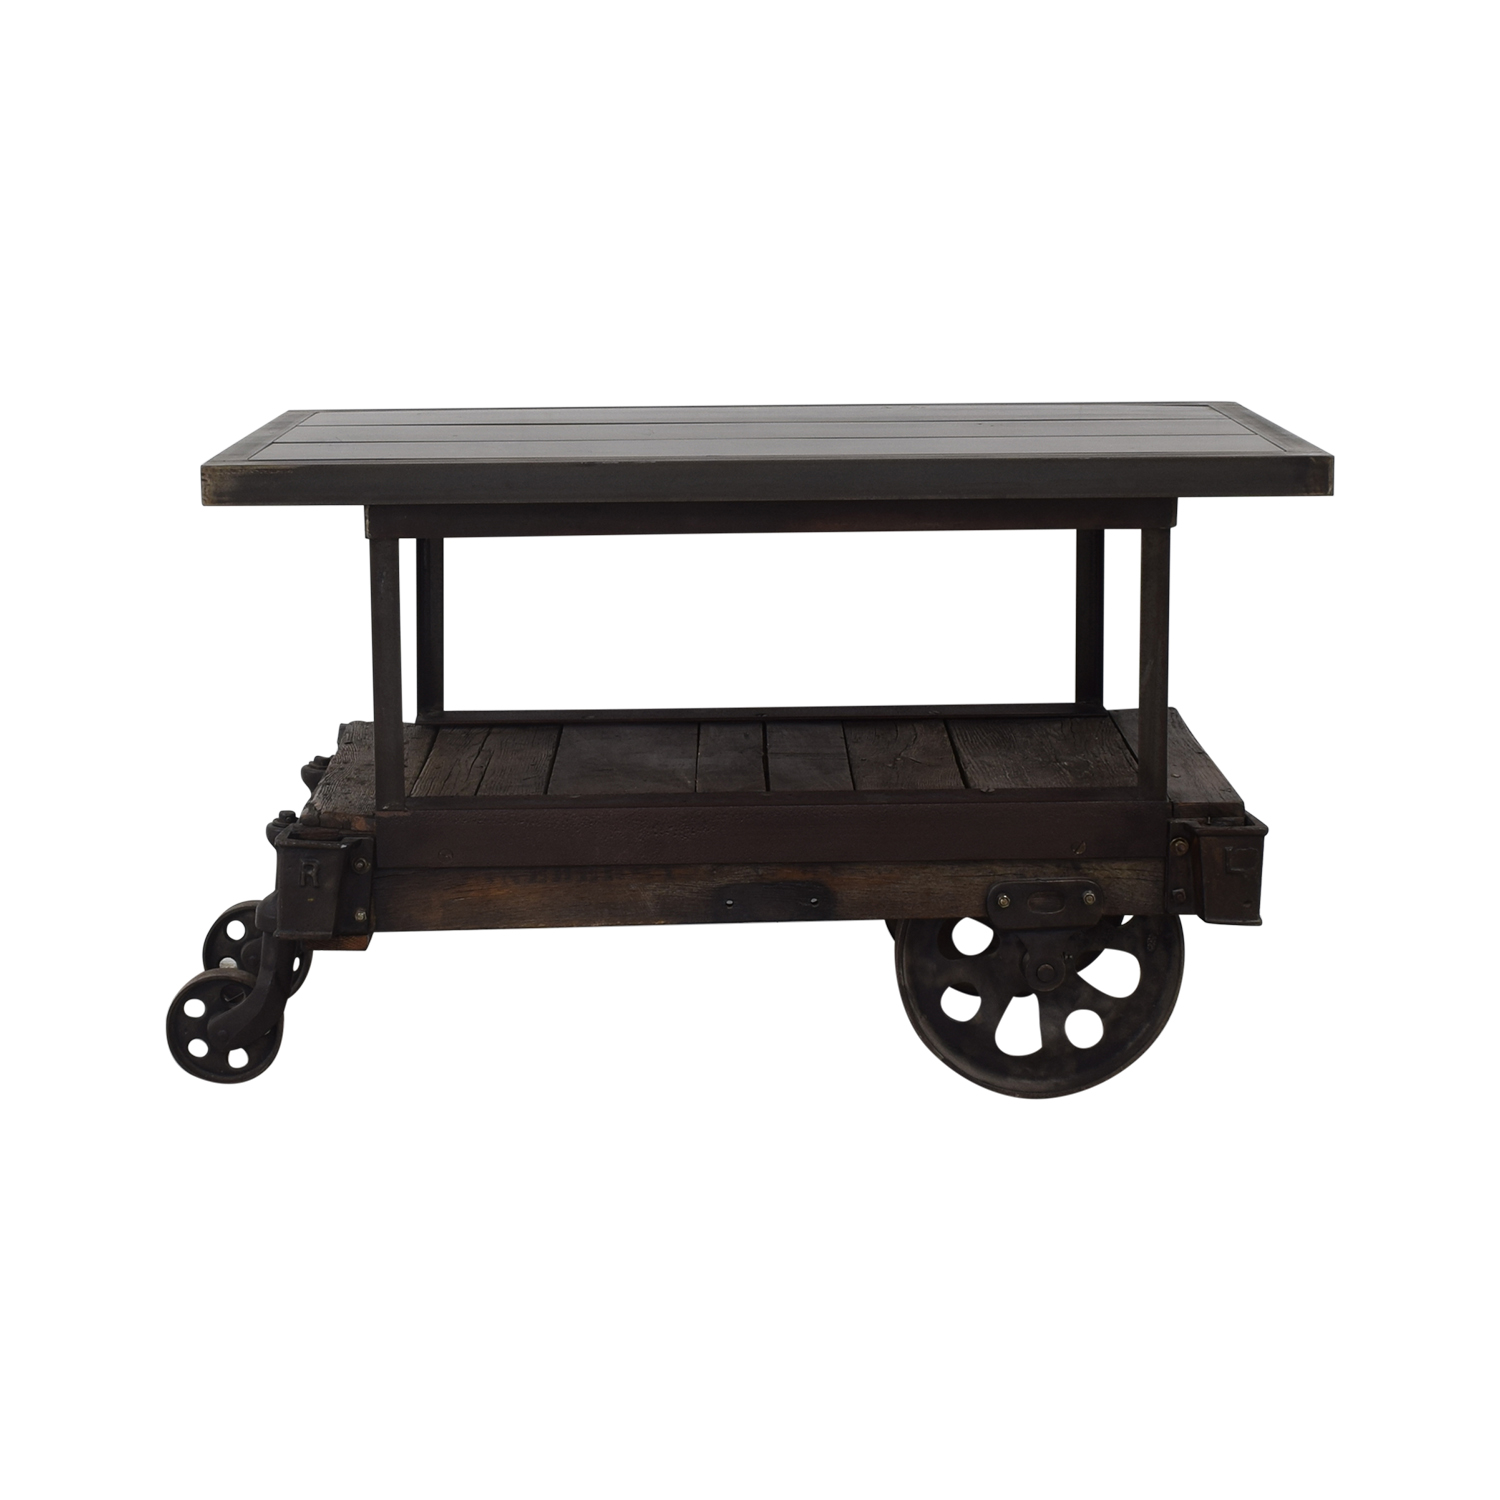 Rustic Wood Table Cart / Accent Tables